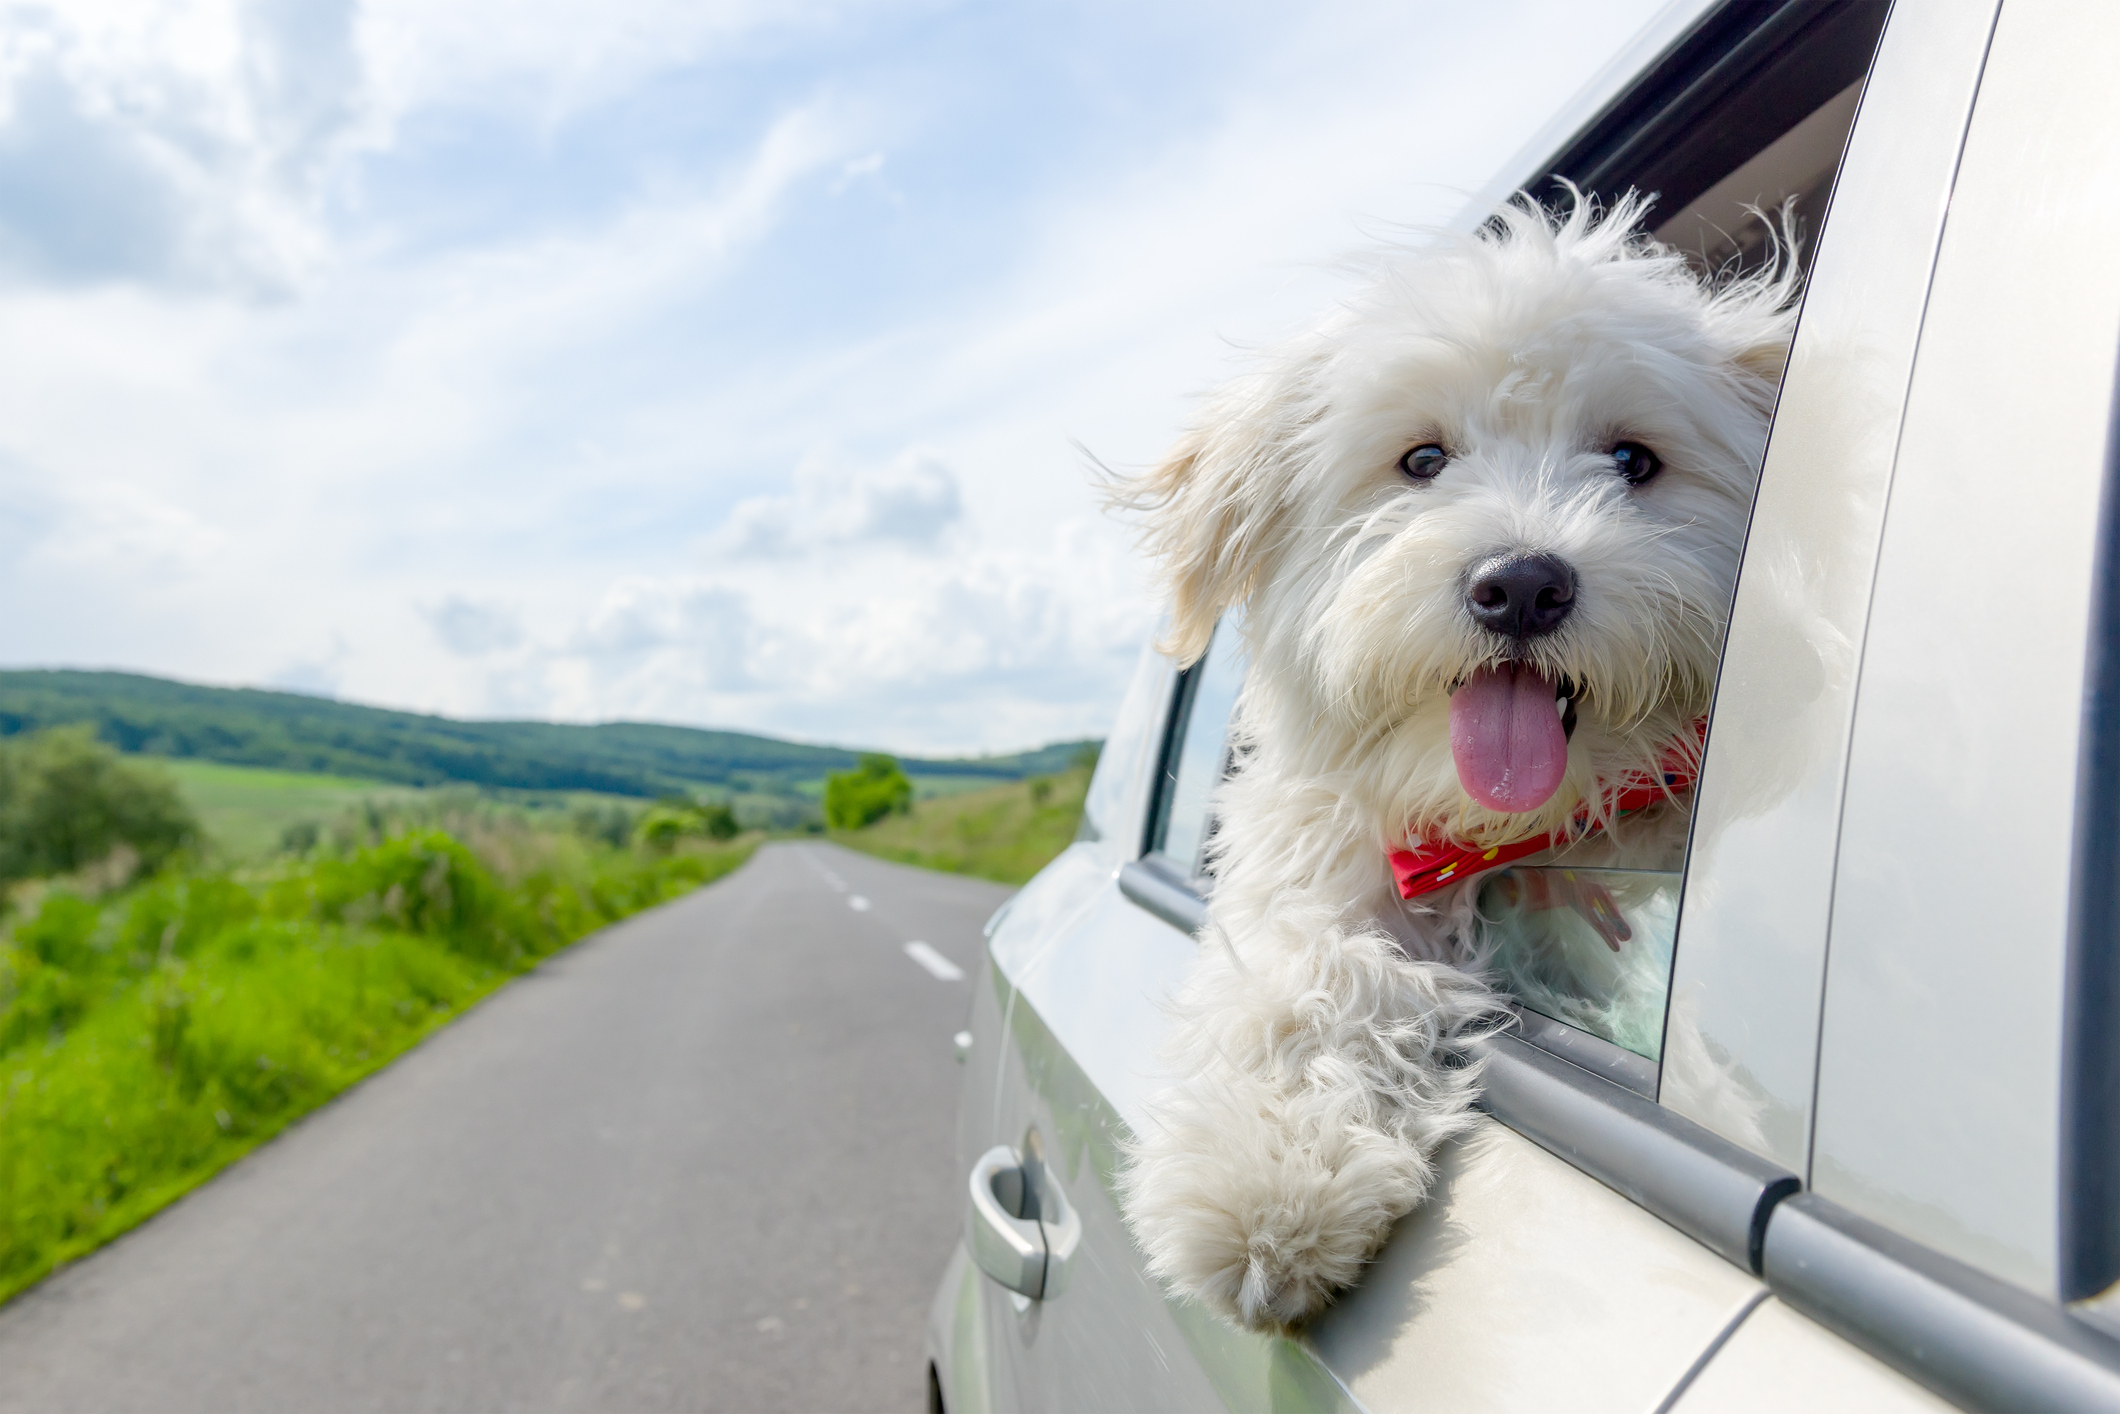 Bichon Frise Looking out of car window, traveling